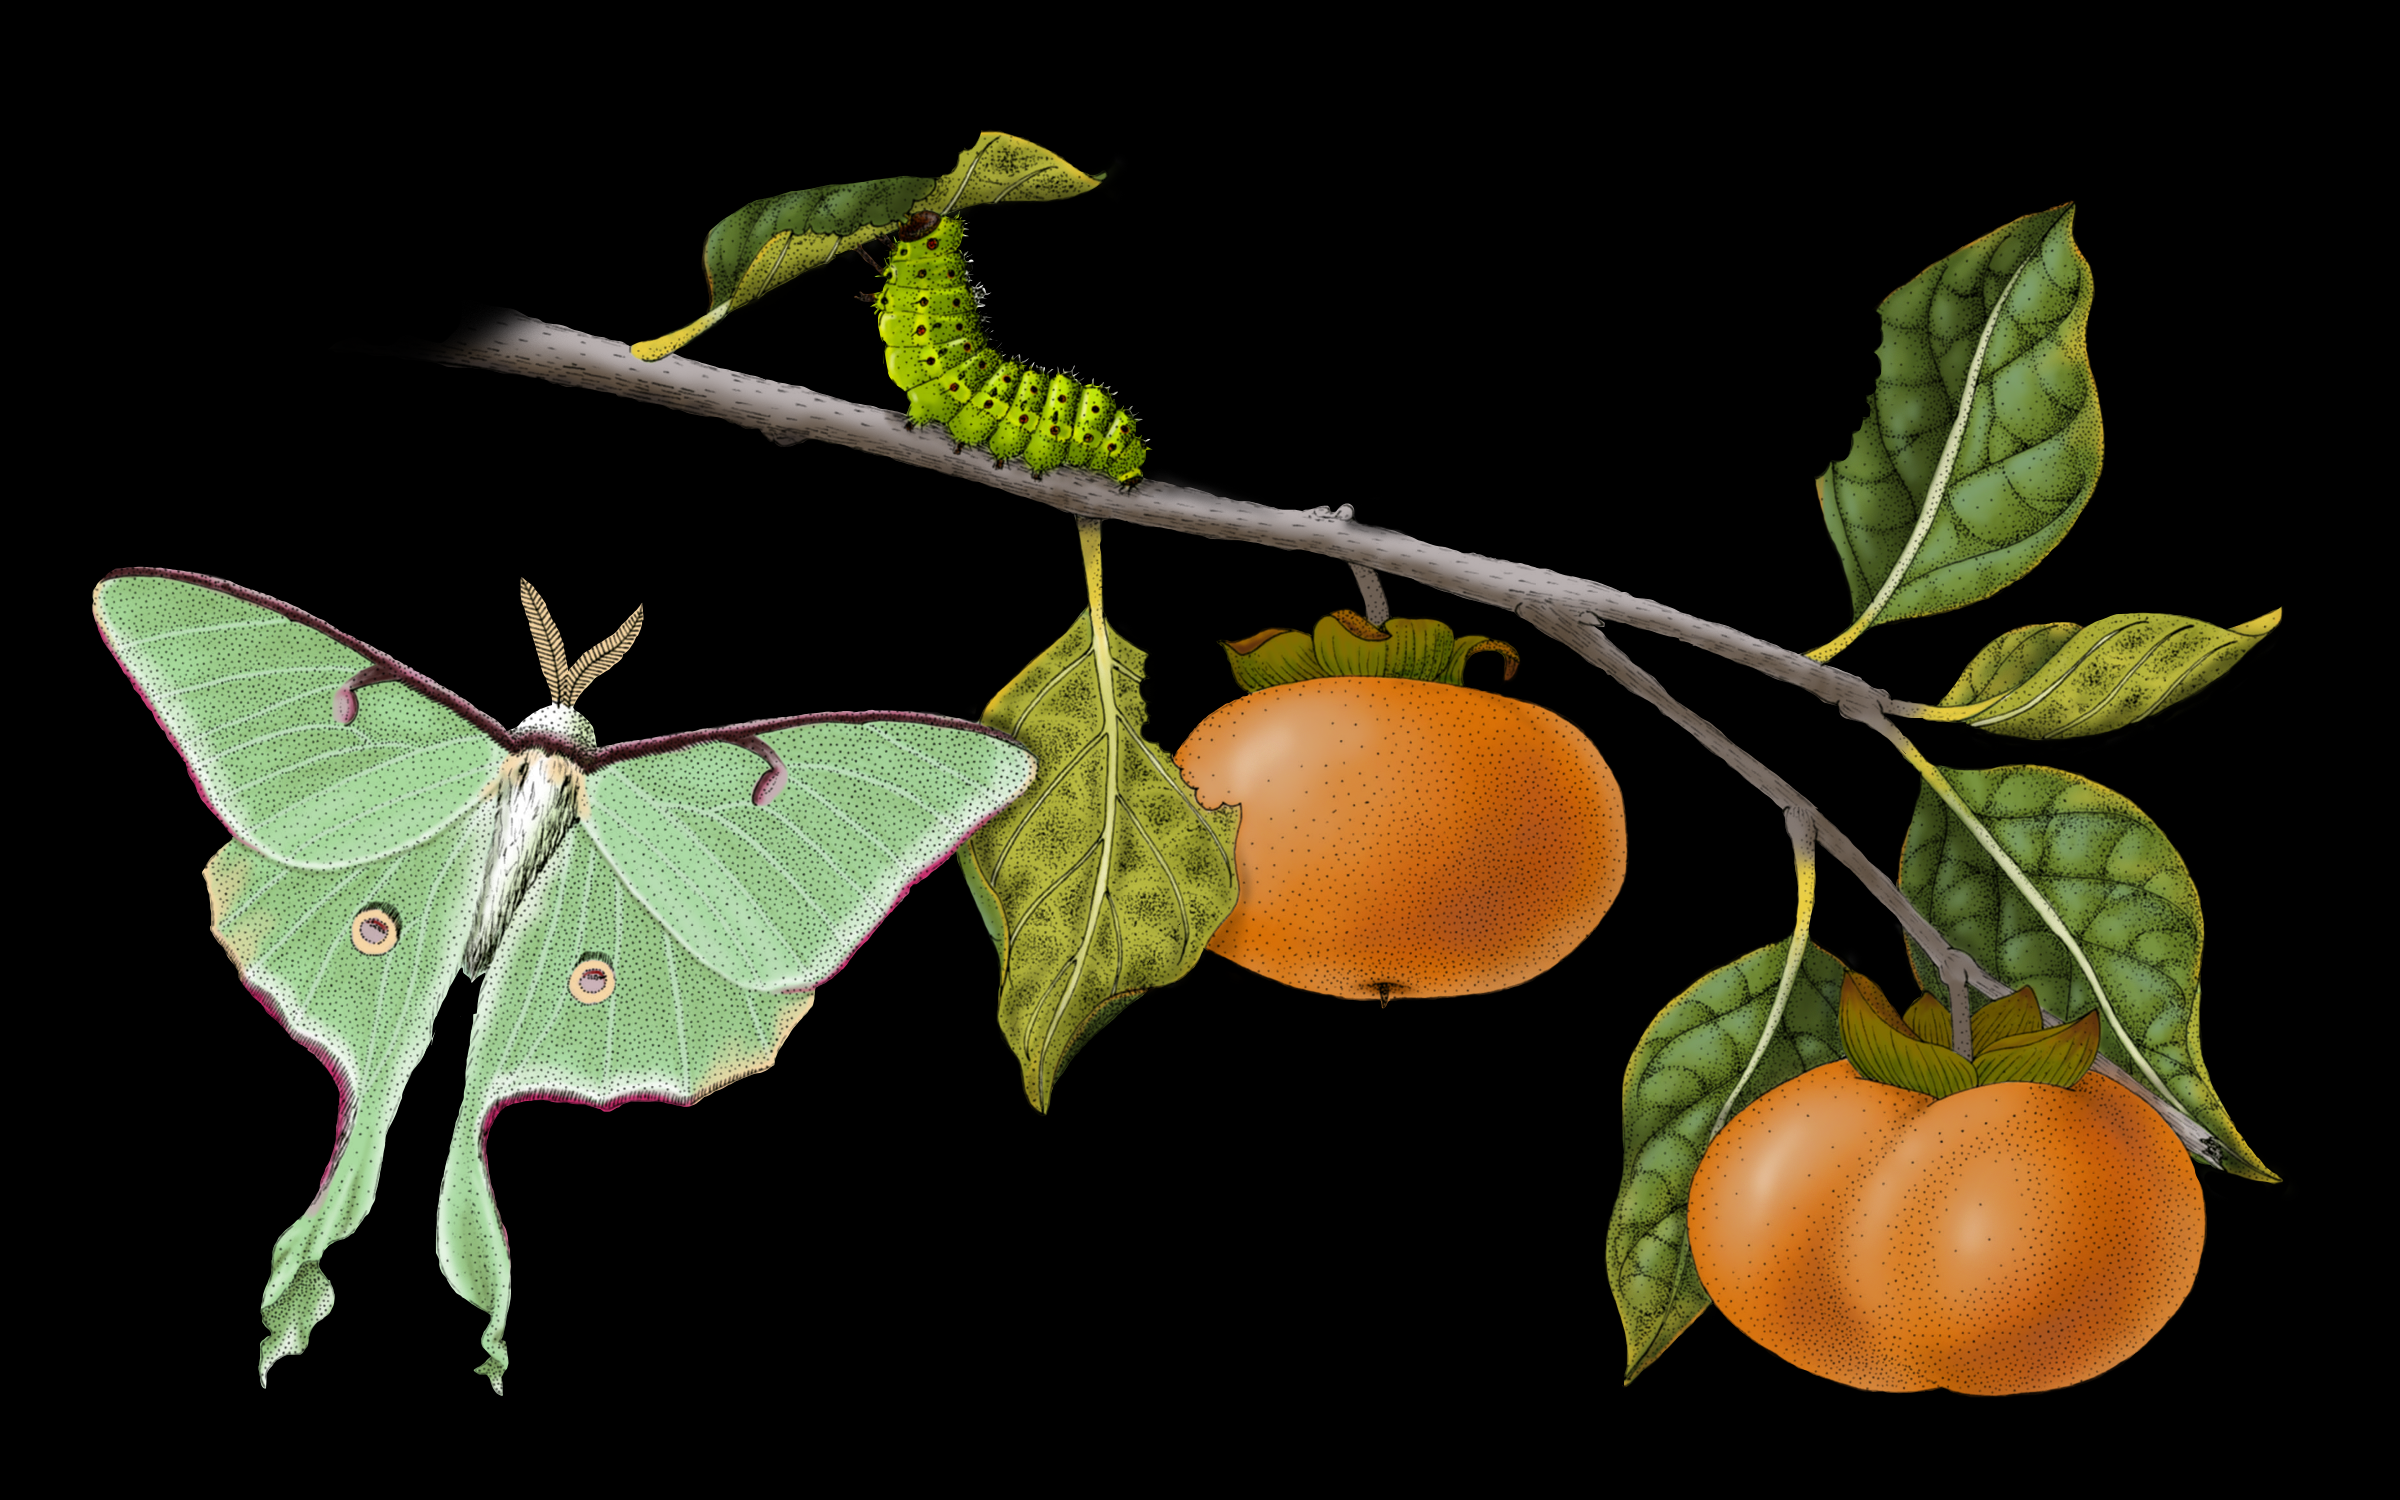 Luna Moth and Persimmons